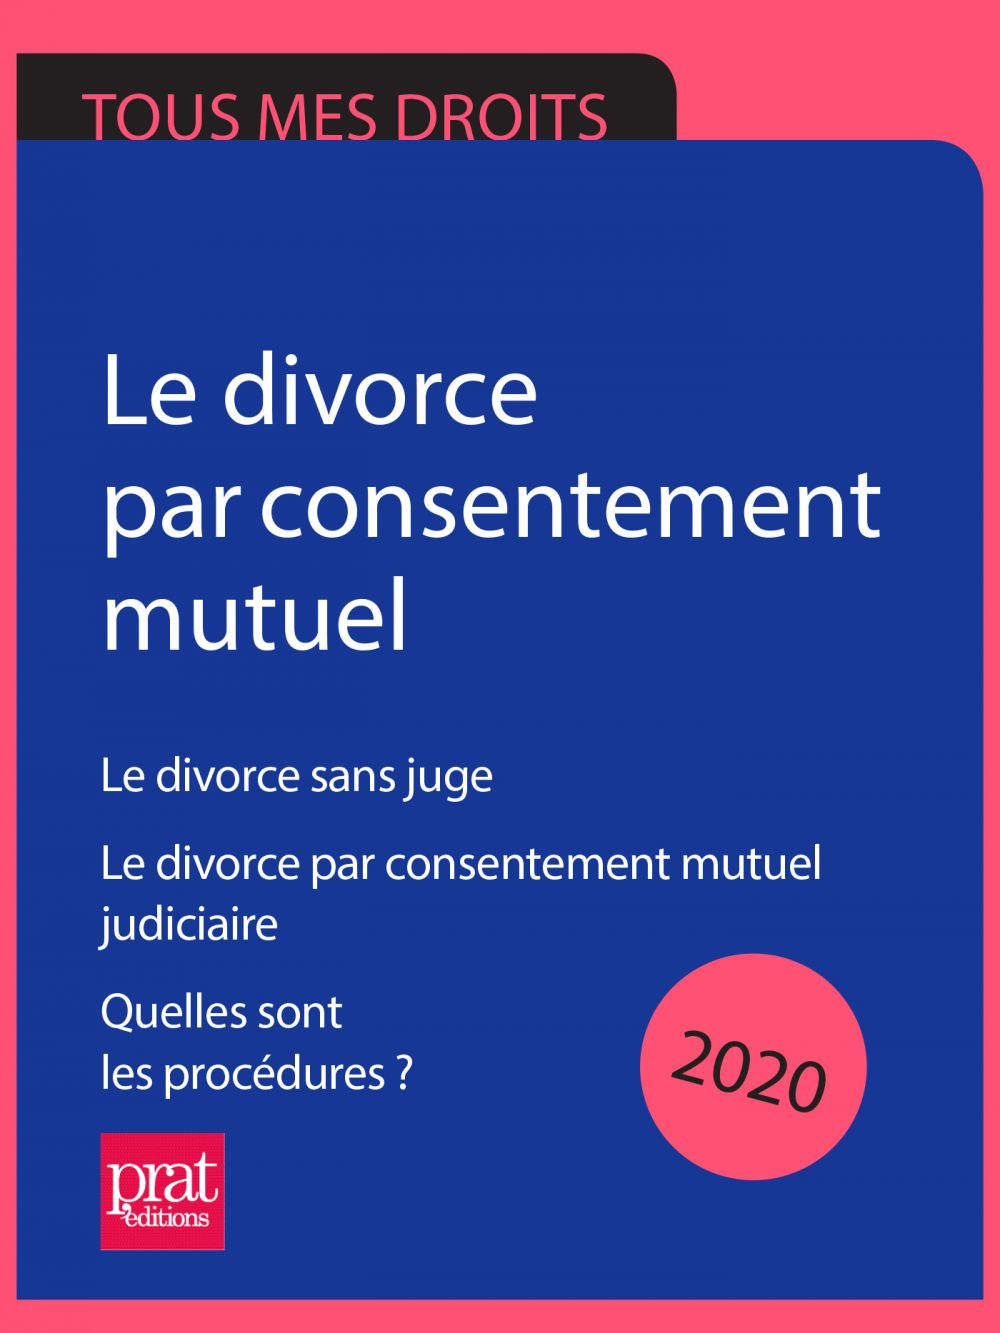 Le divorce par consentement mutuel 2020